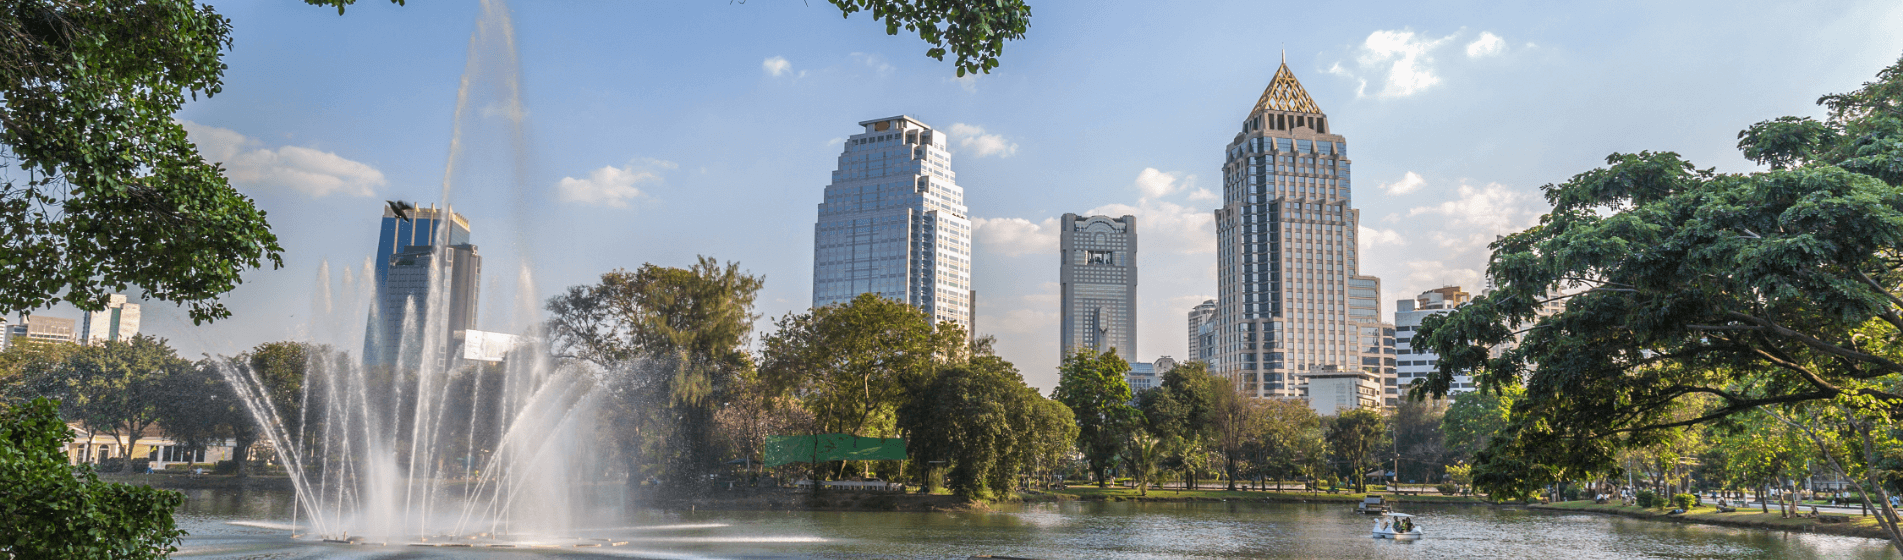 buying hpise in bangkok with cryptocurrency